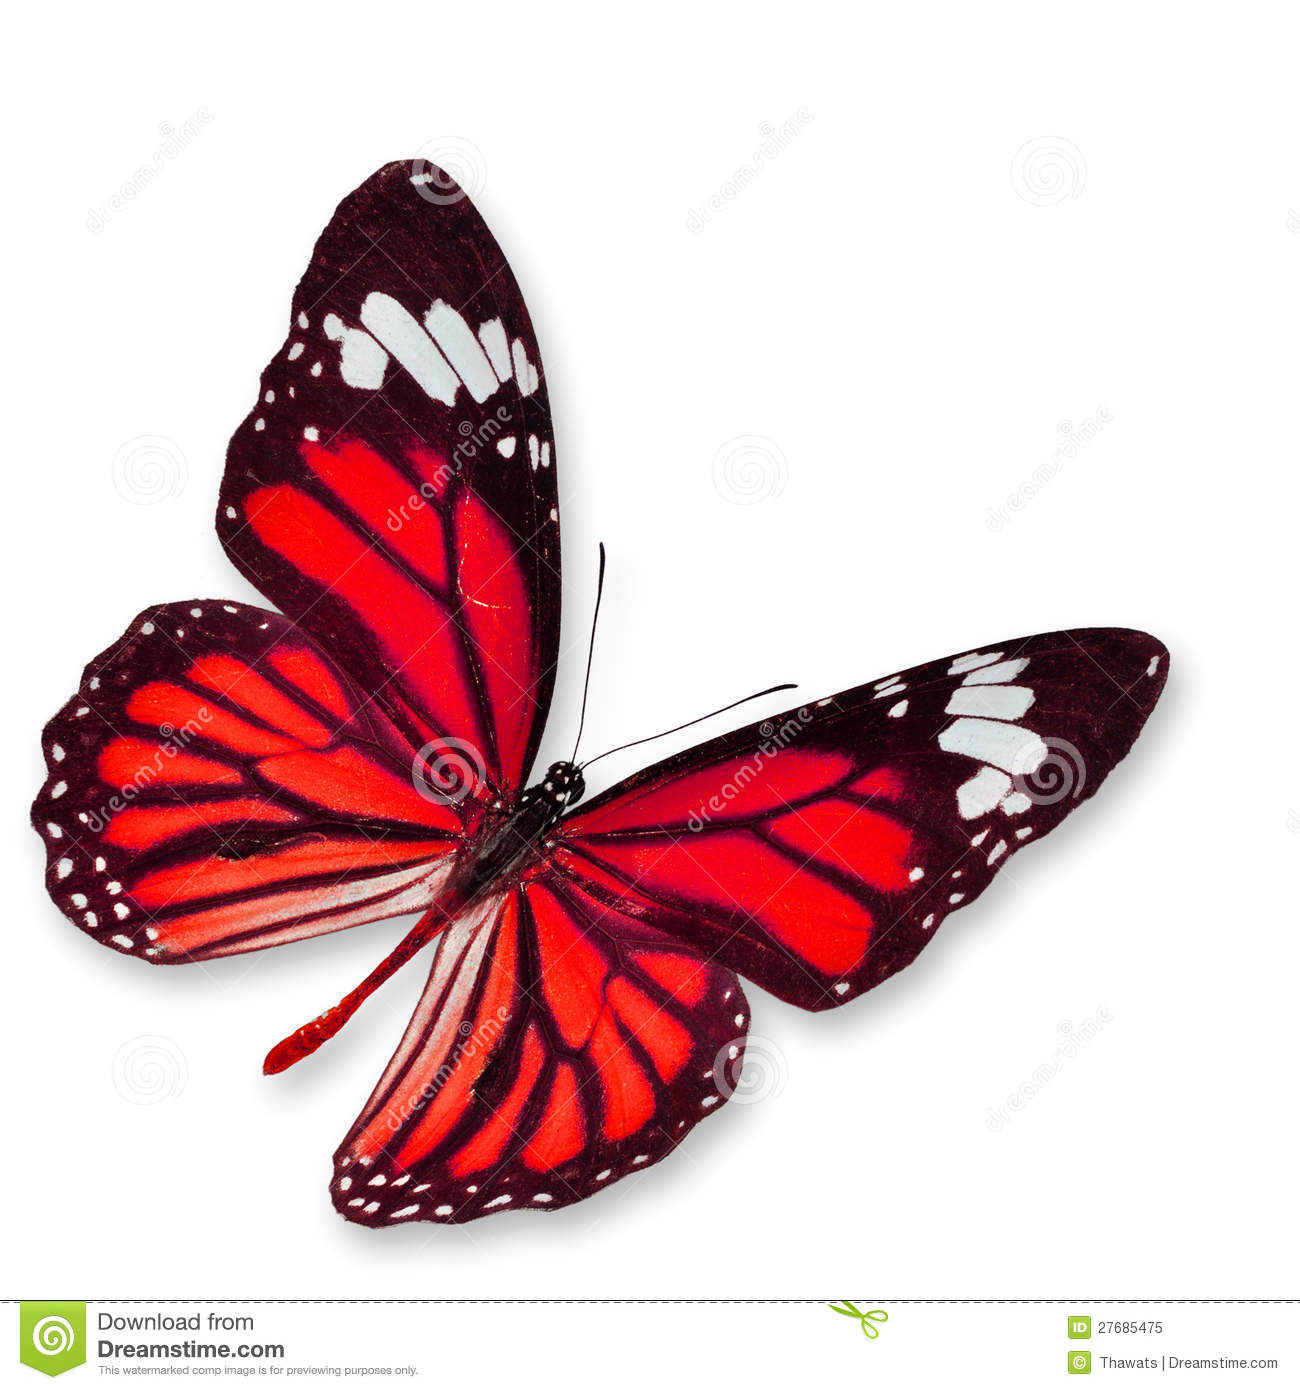 Red butterfly background - photo#20